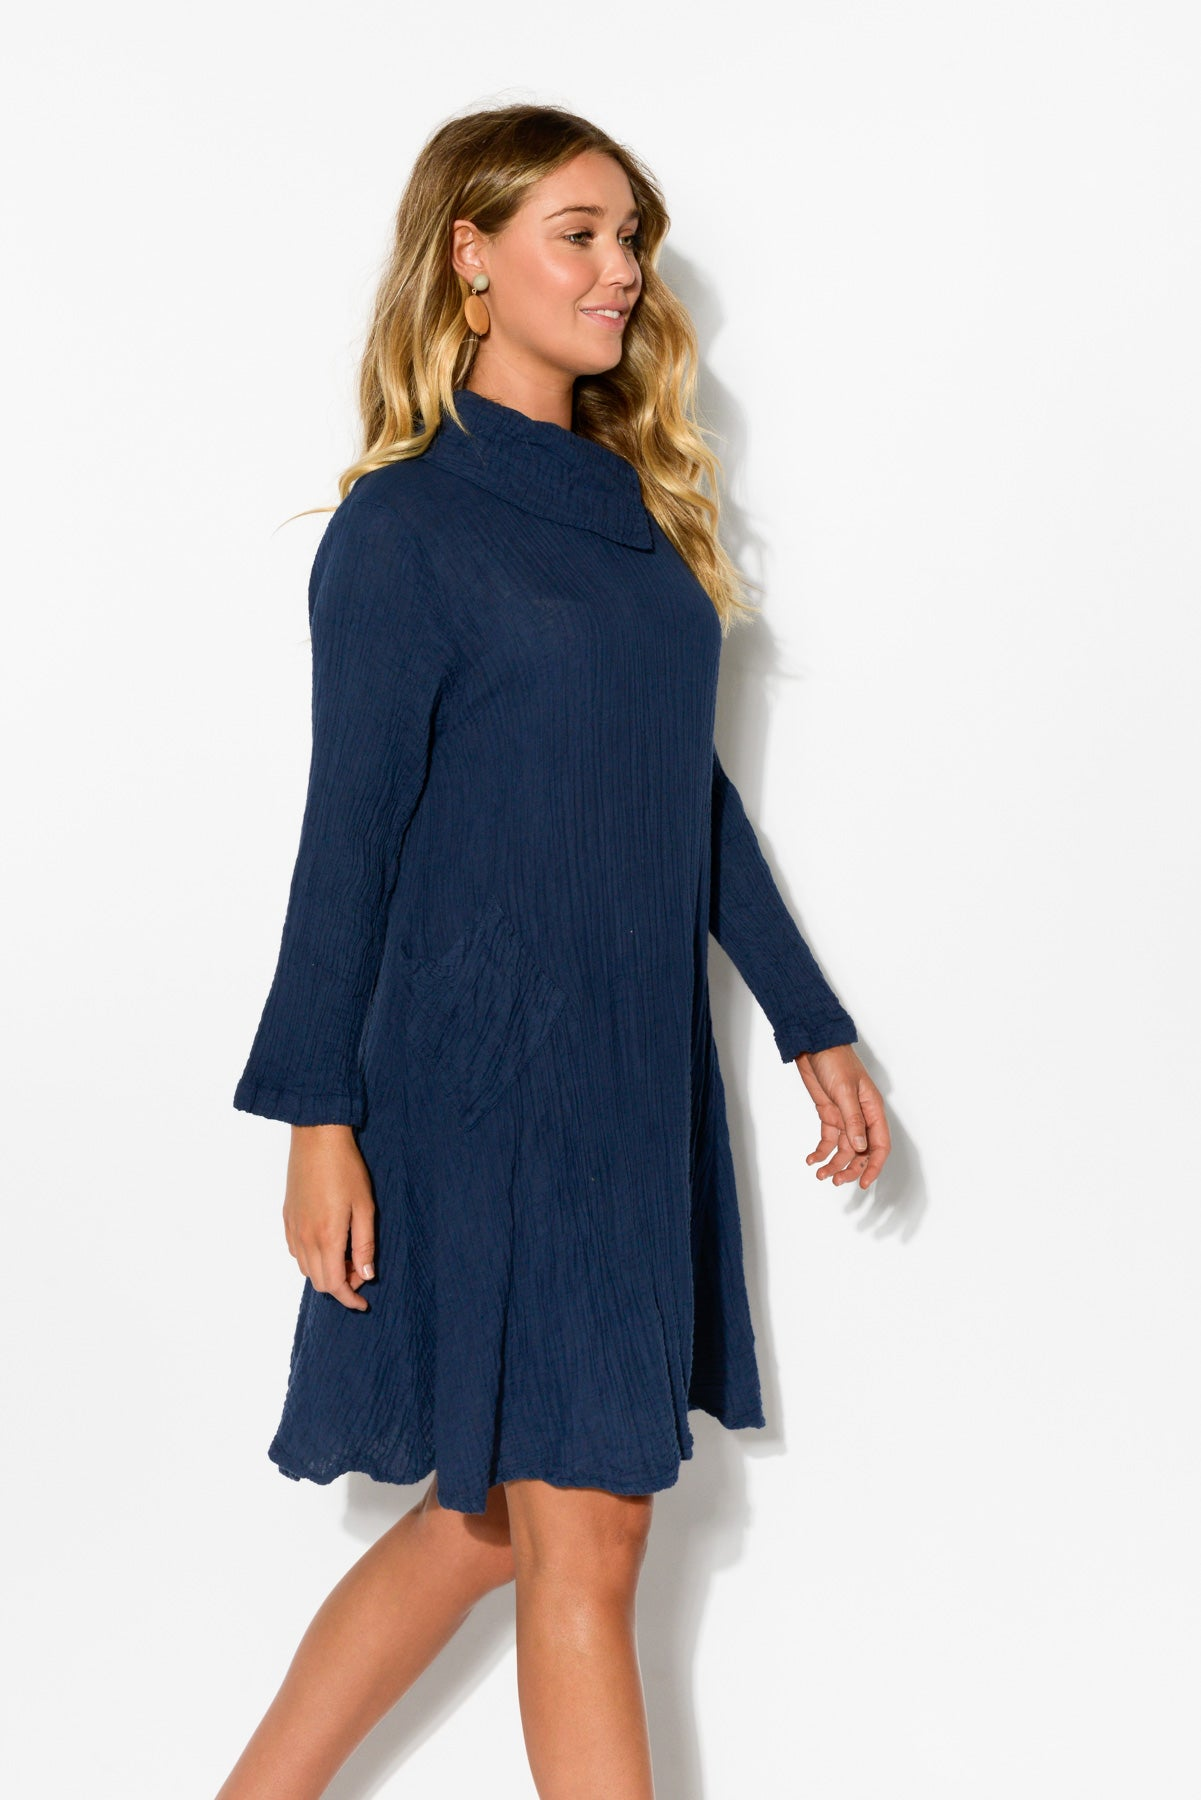 Navy Cowl Neck Crinkle Cotton Dress - Blue Bungalow